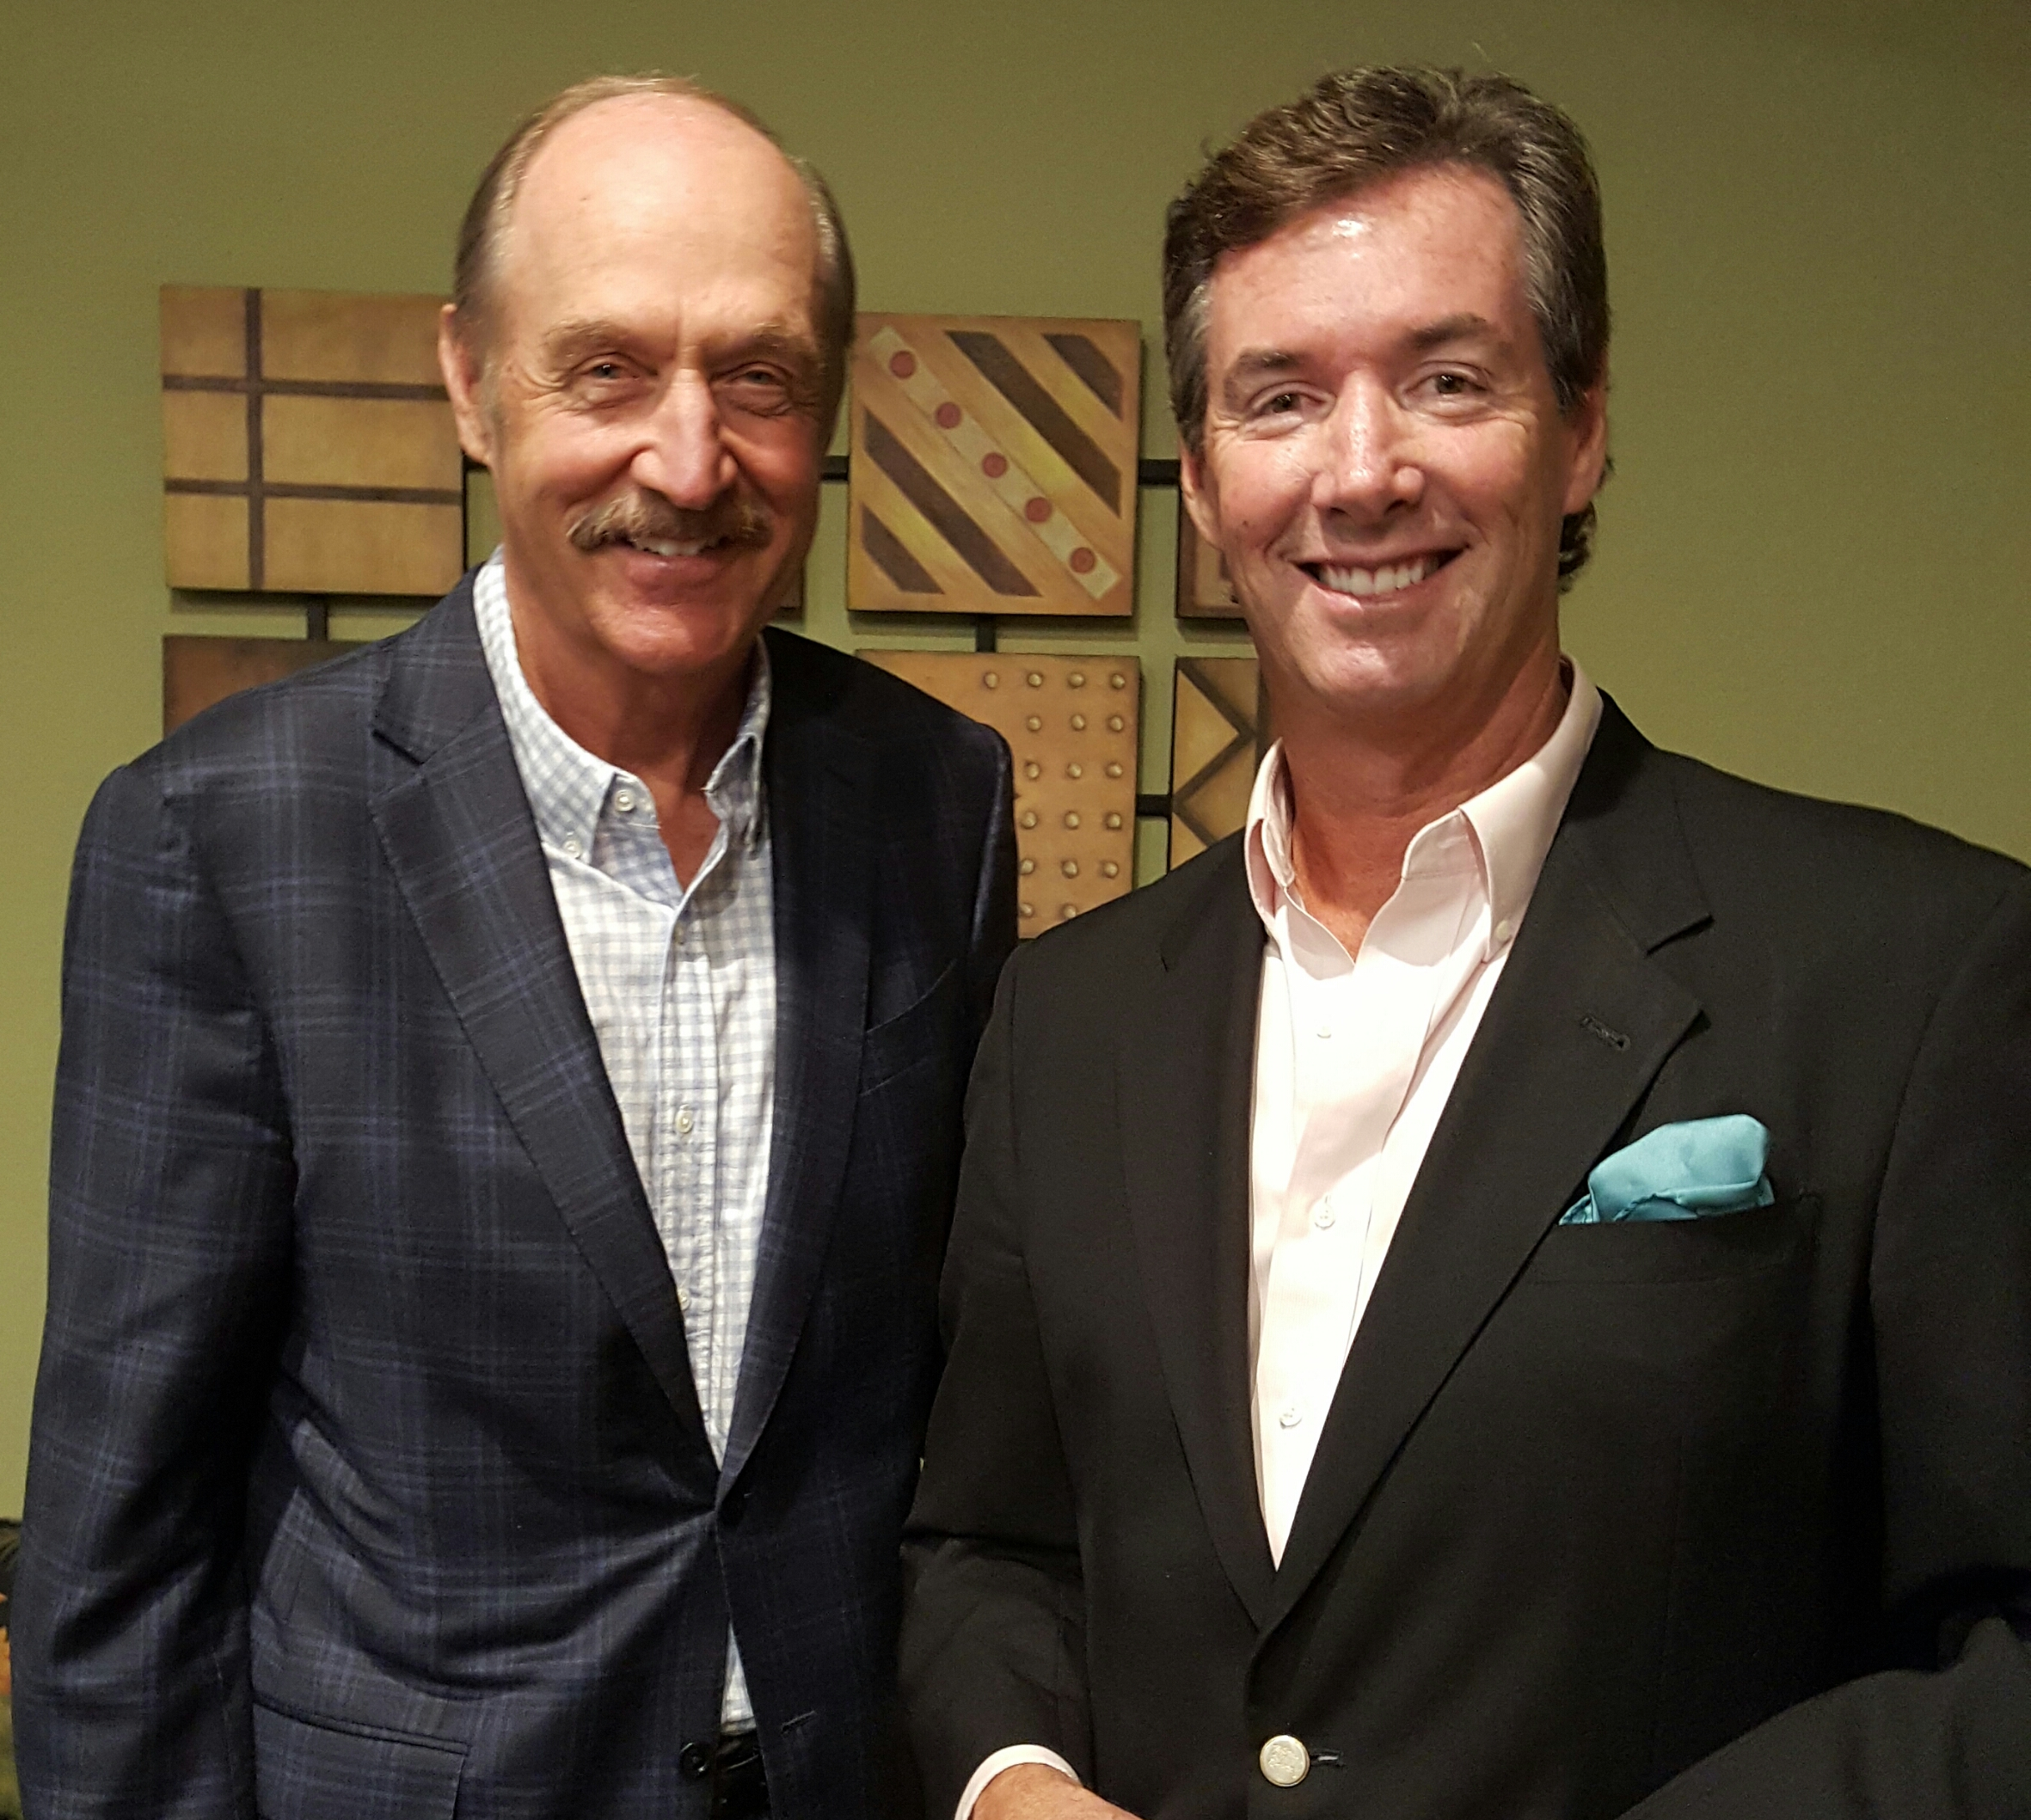 Tennis Hall of Famer Stan Smith with Ray Collins.